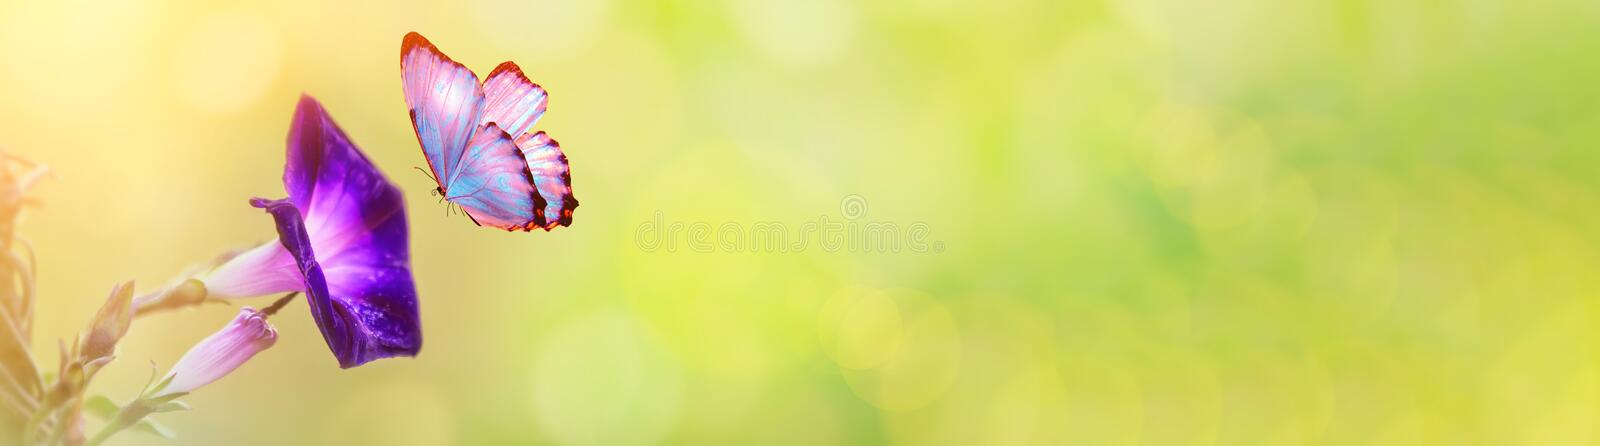 Petunia macro in summer spring field on spring bokeh background with sunshine and a flying butterfly. Summer natural landscape. Petunia macro in summer spring stock image